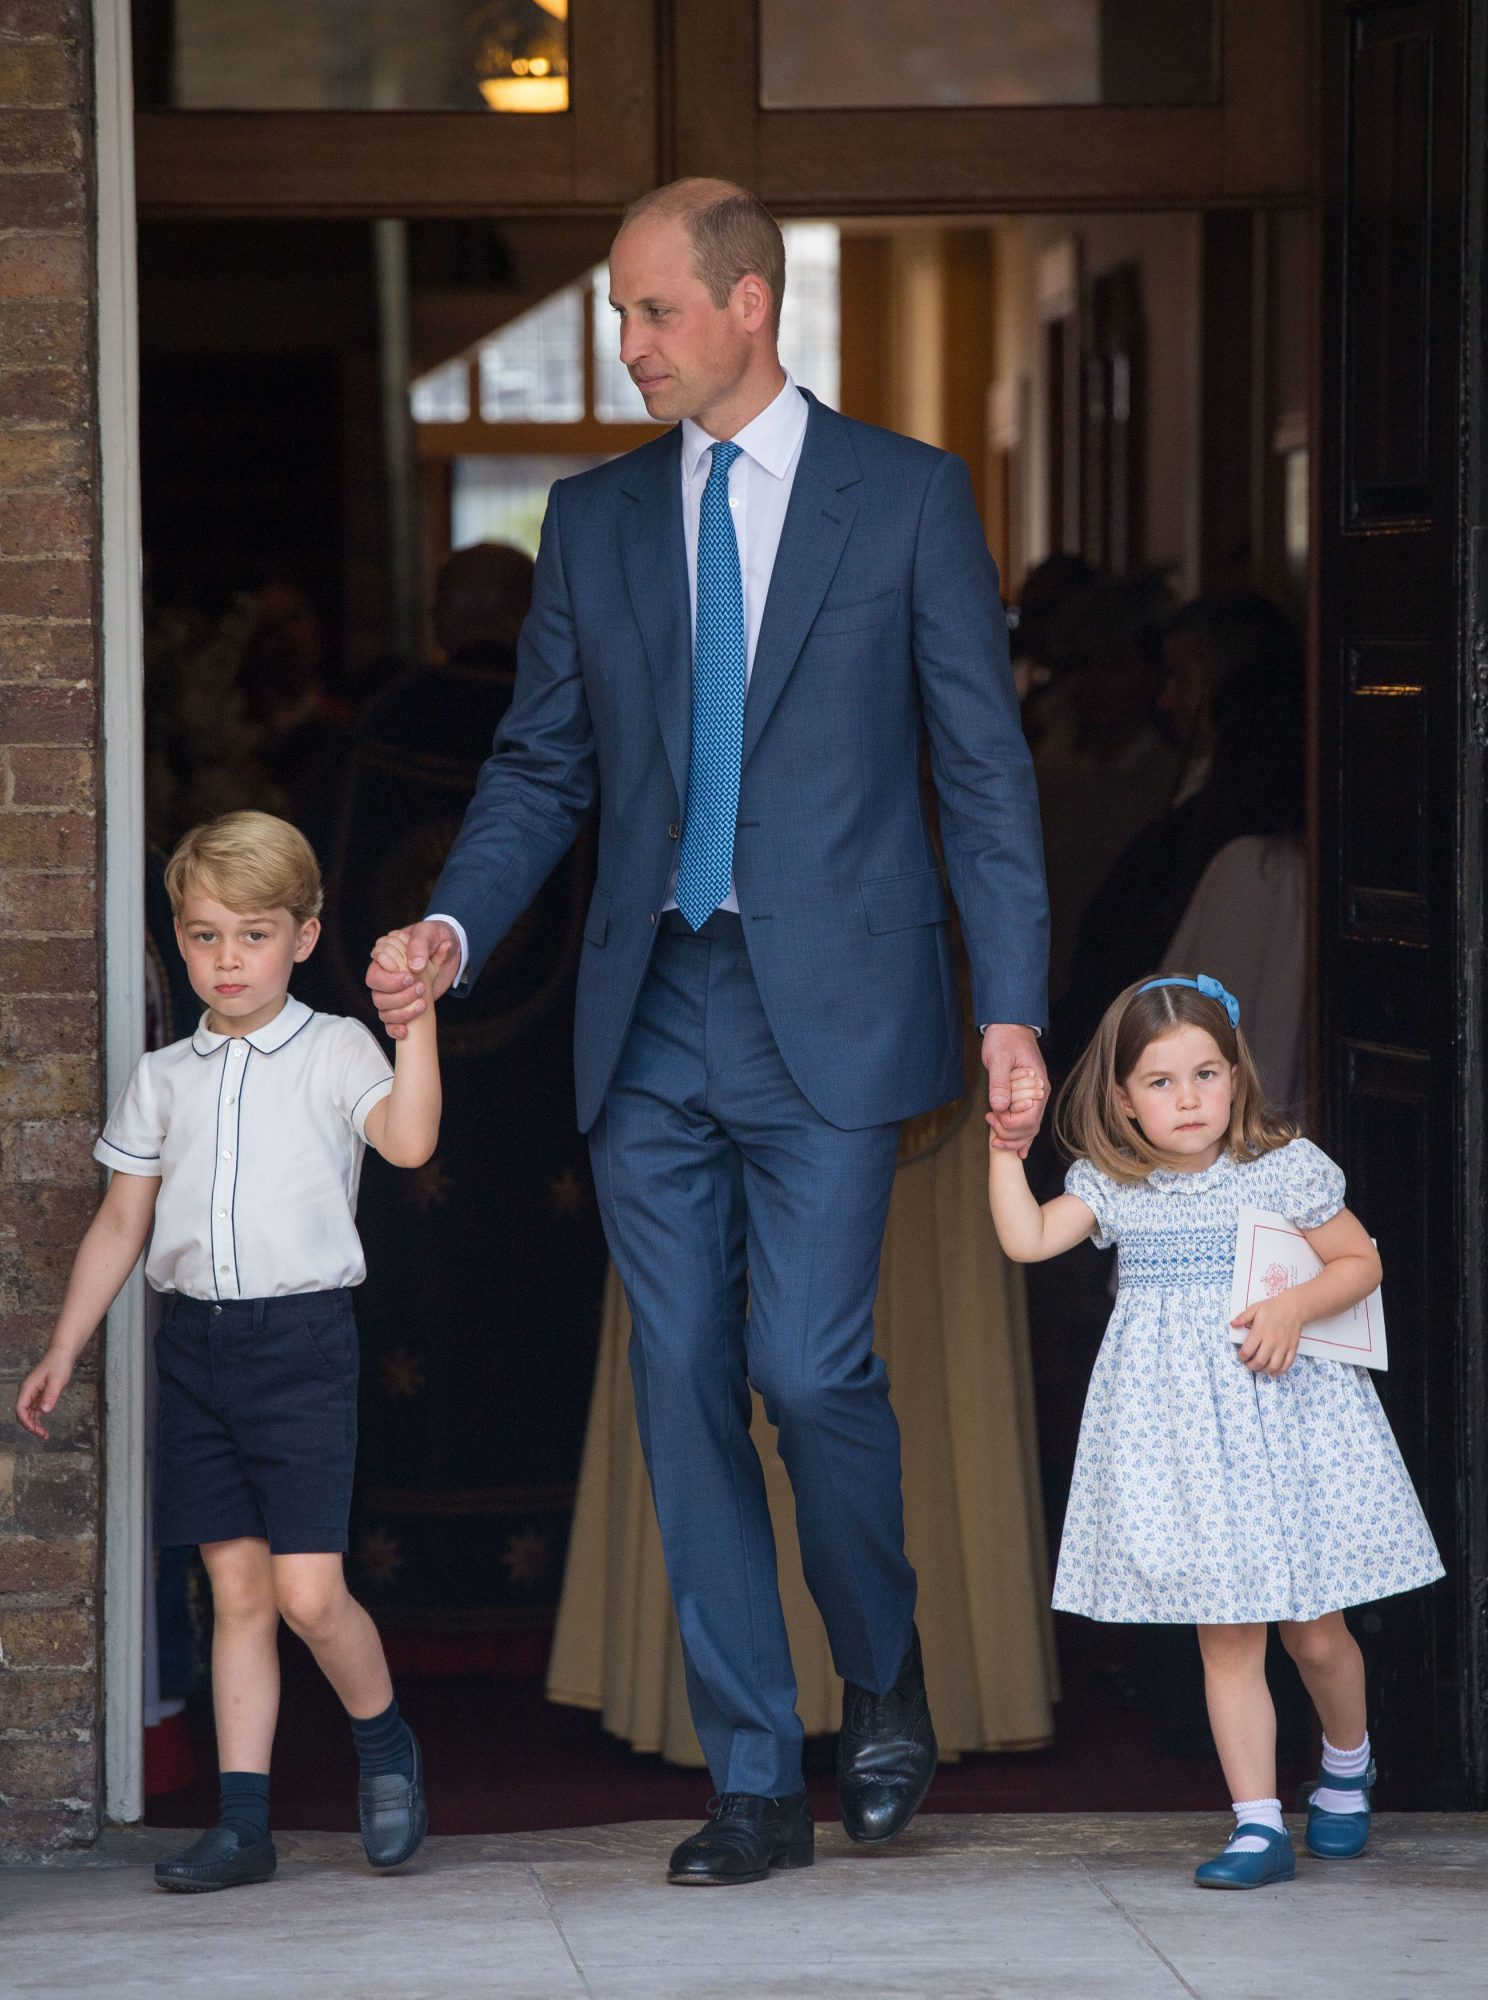 Prince George and Princess Charlotte at Prince Louis' Christening